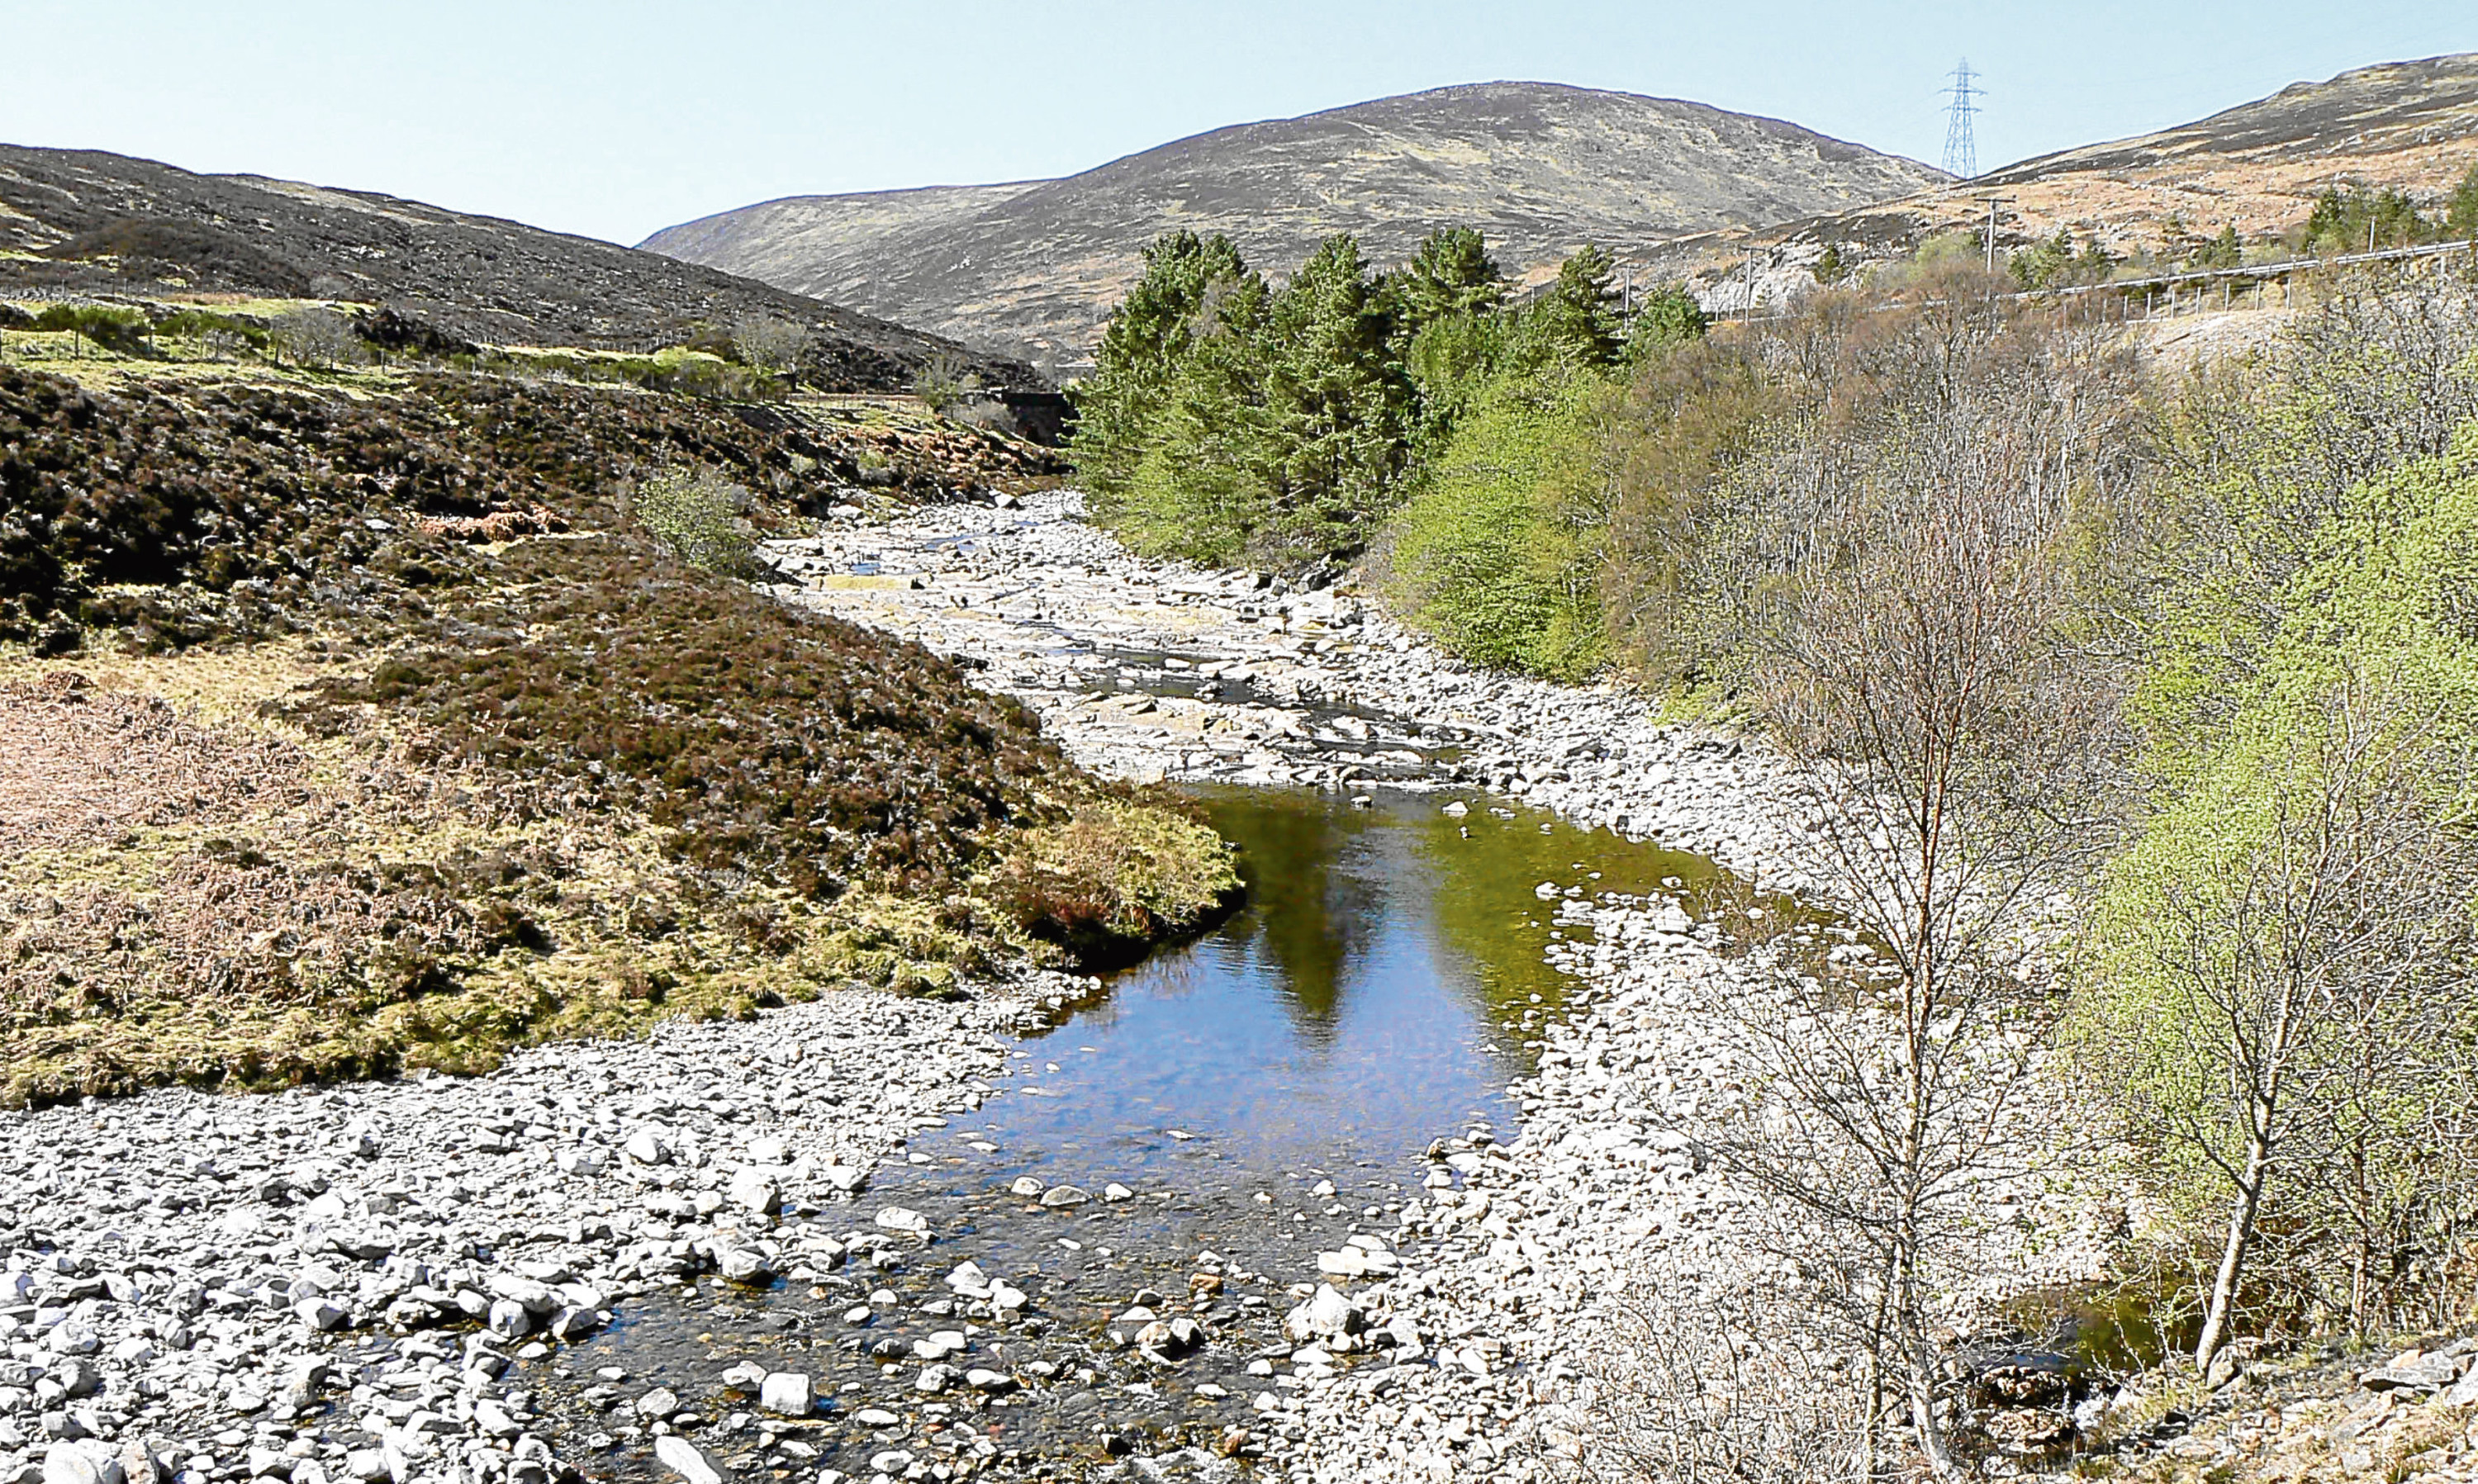 The dried-up bed of the River Garry in Perthshire, a tributary of the Tay.